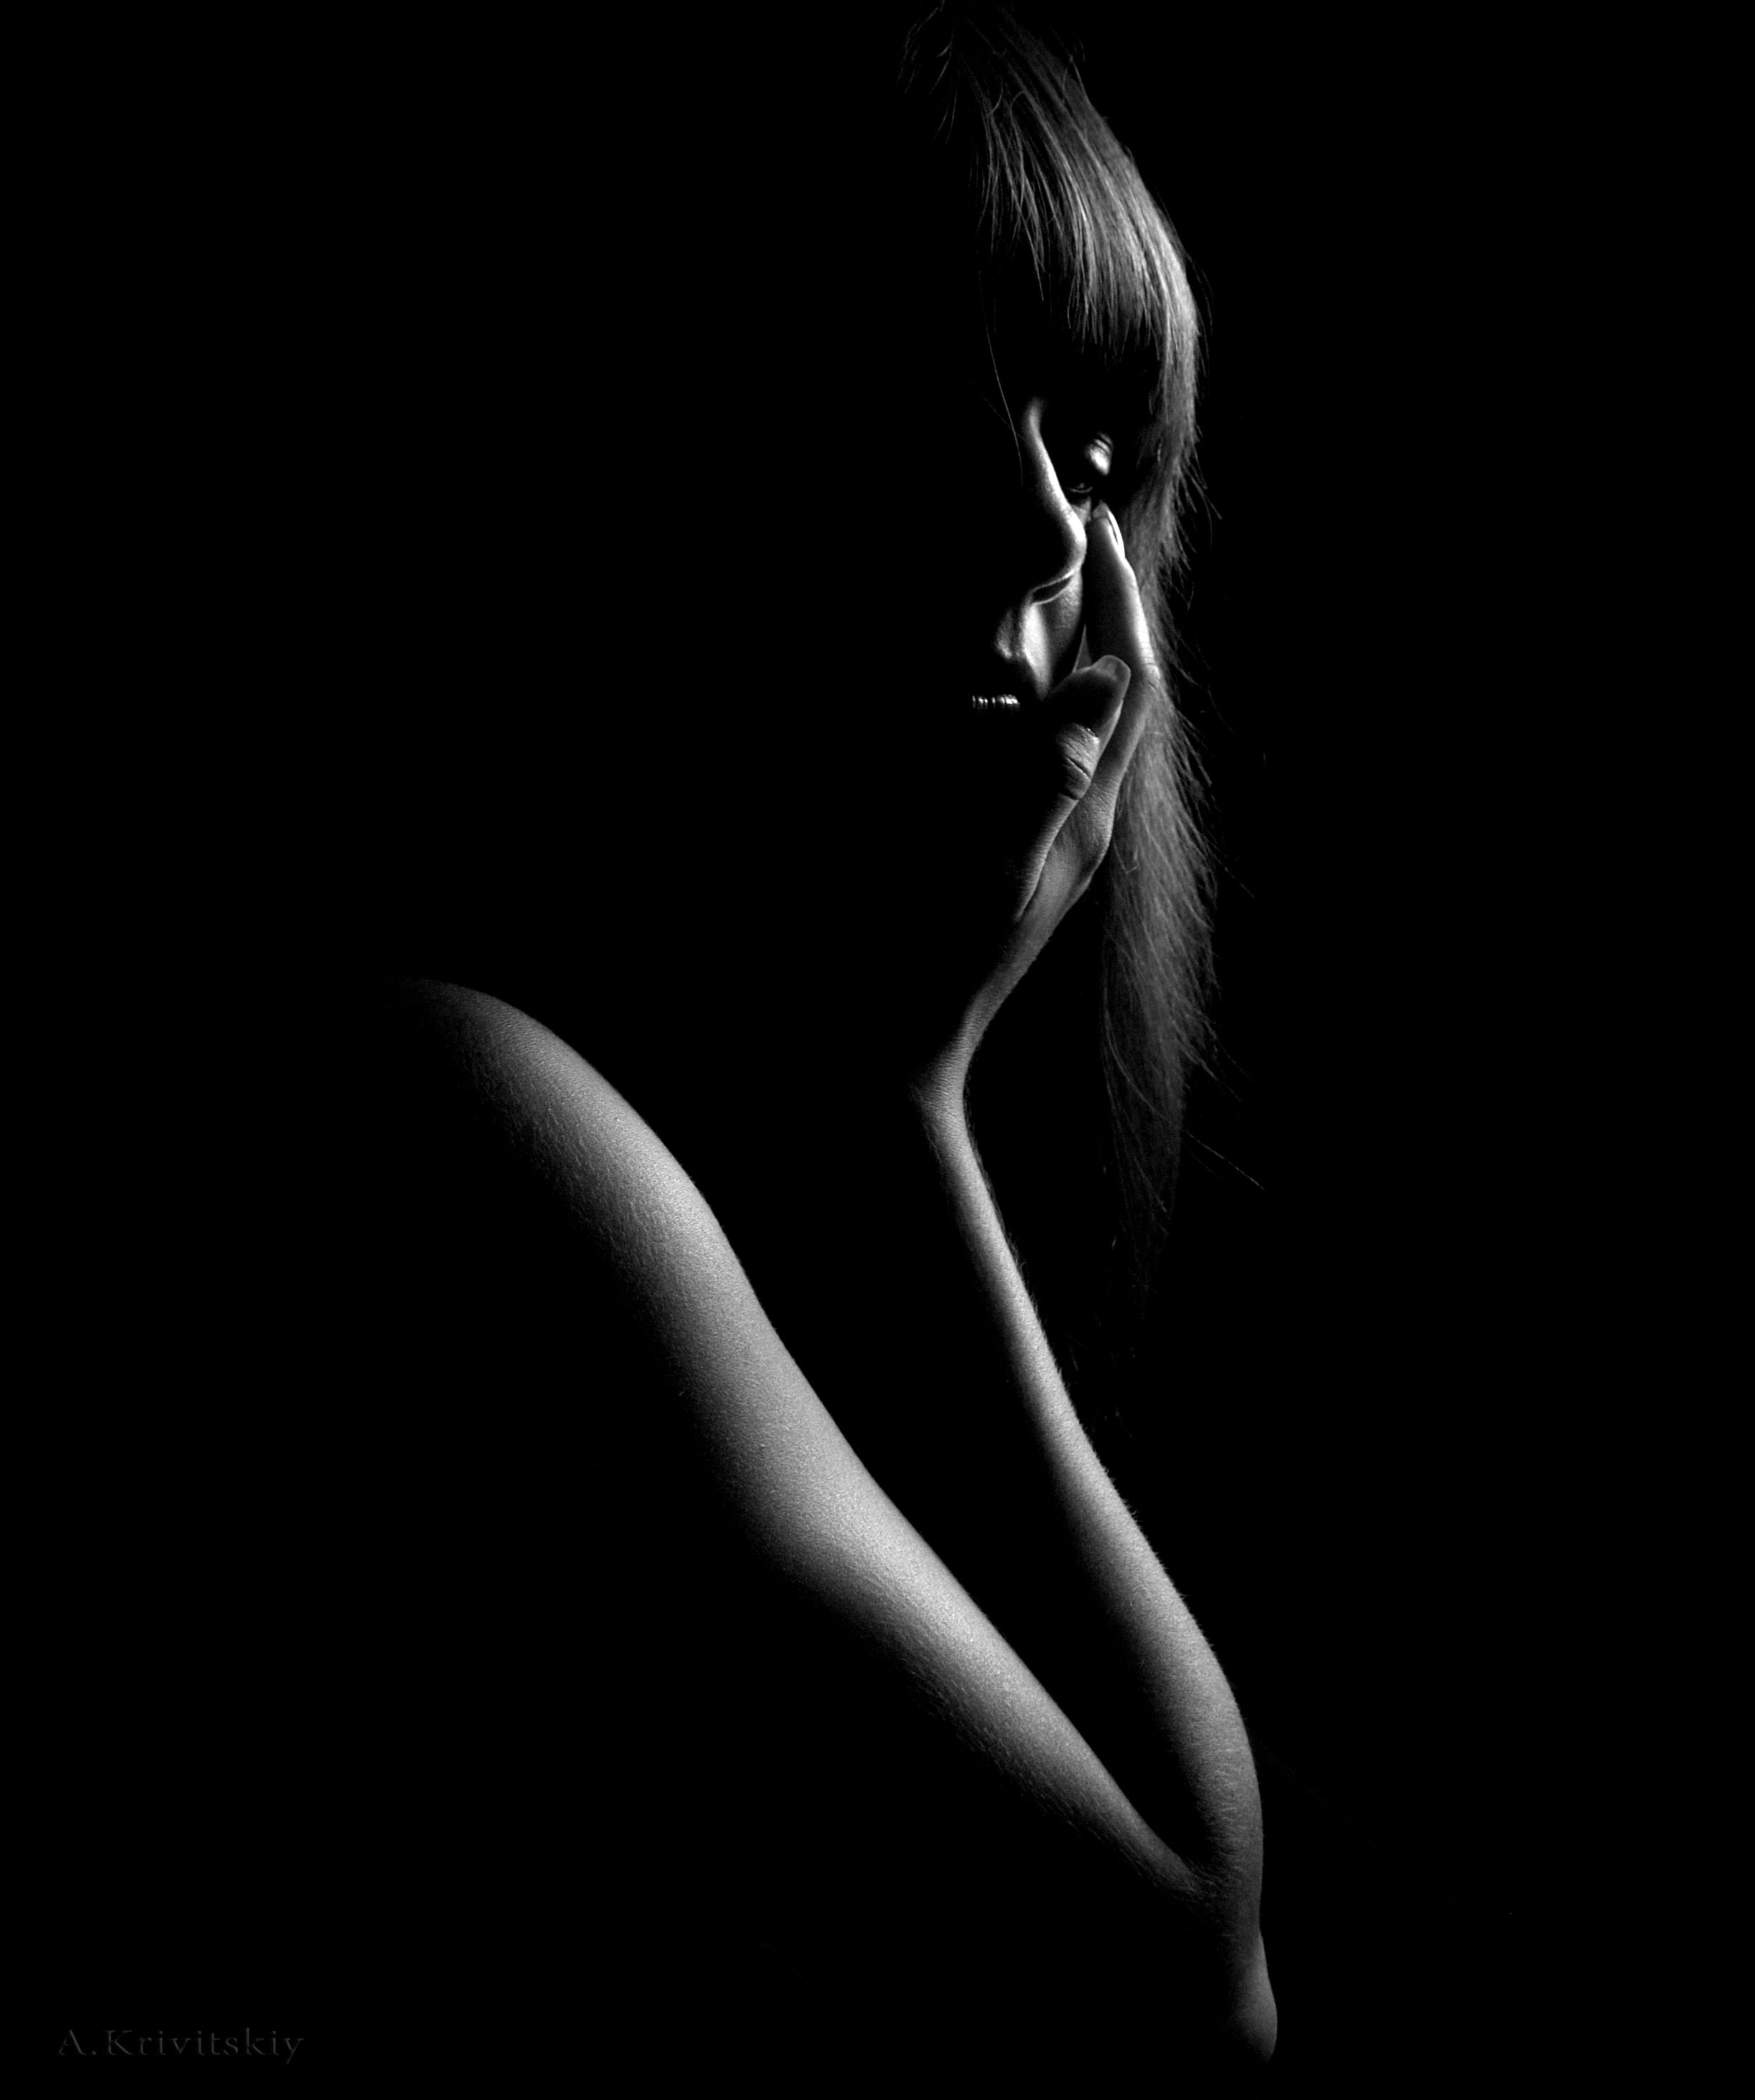 Grayscale photo of woman